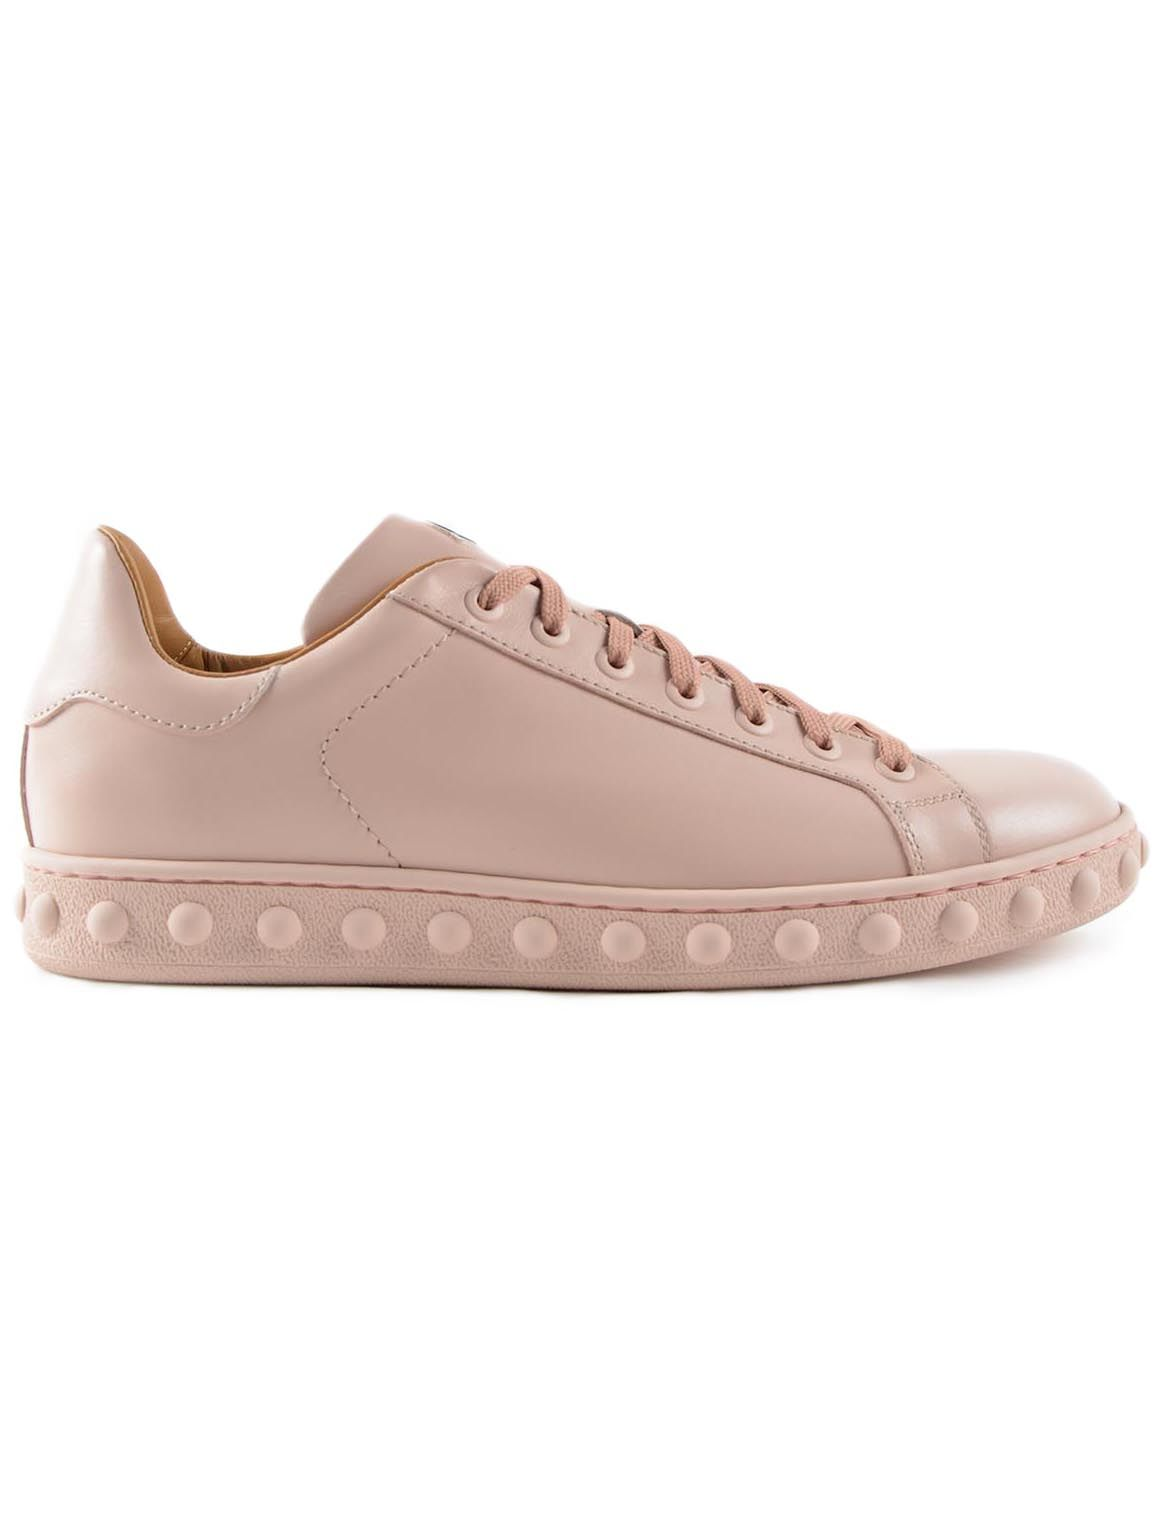 Moncler Studded Sole Sneakers